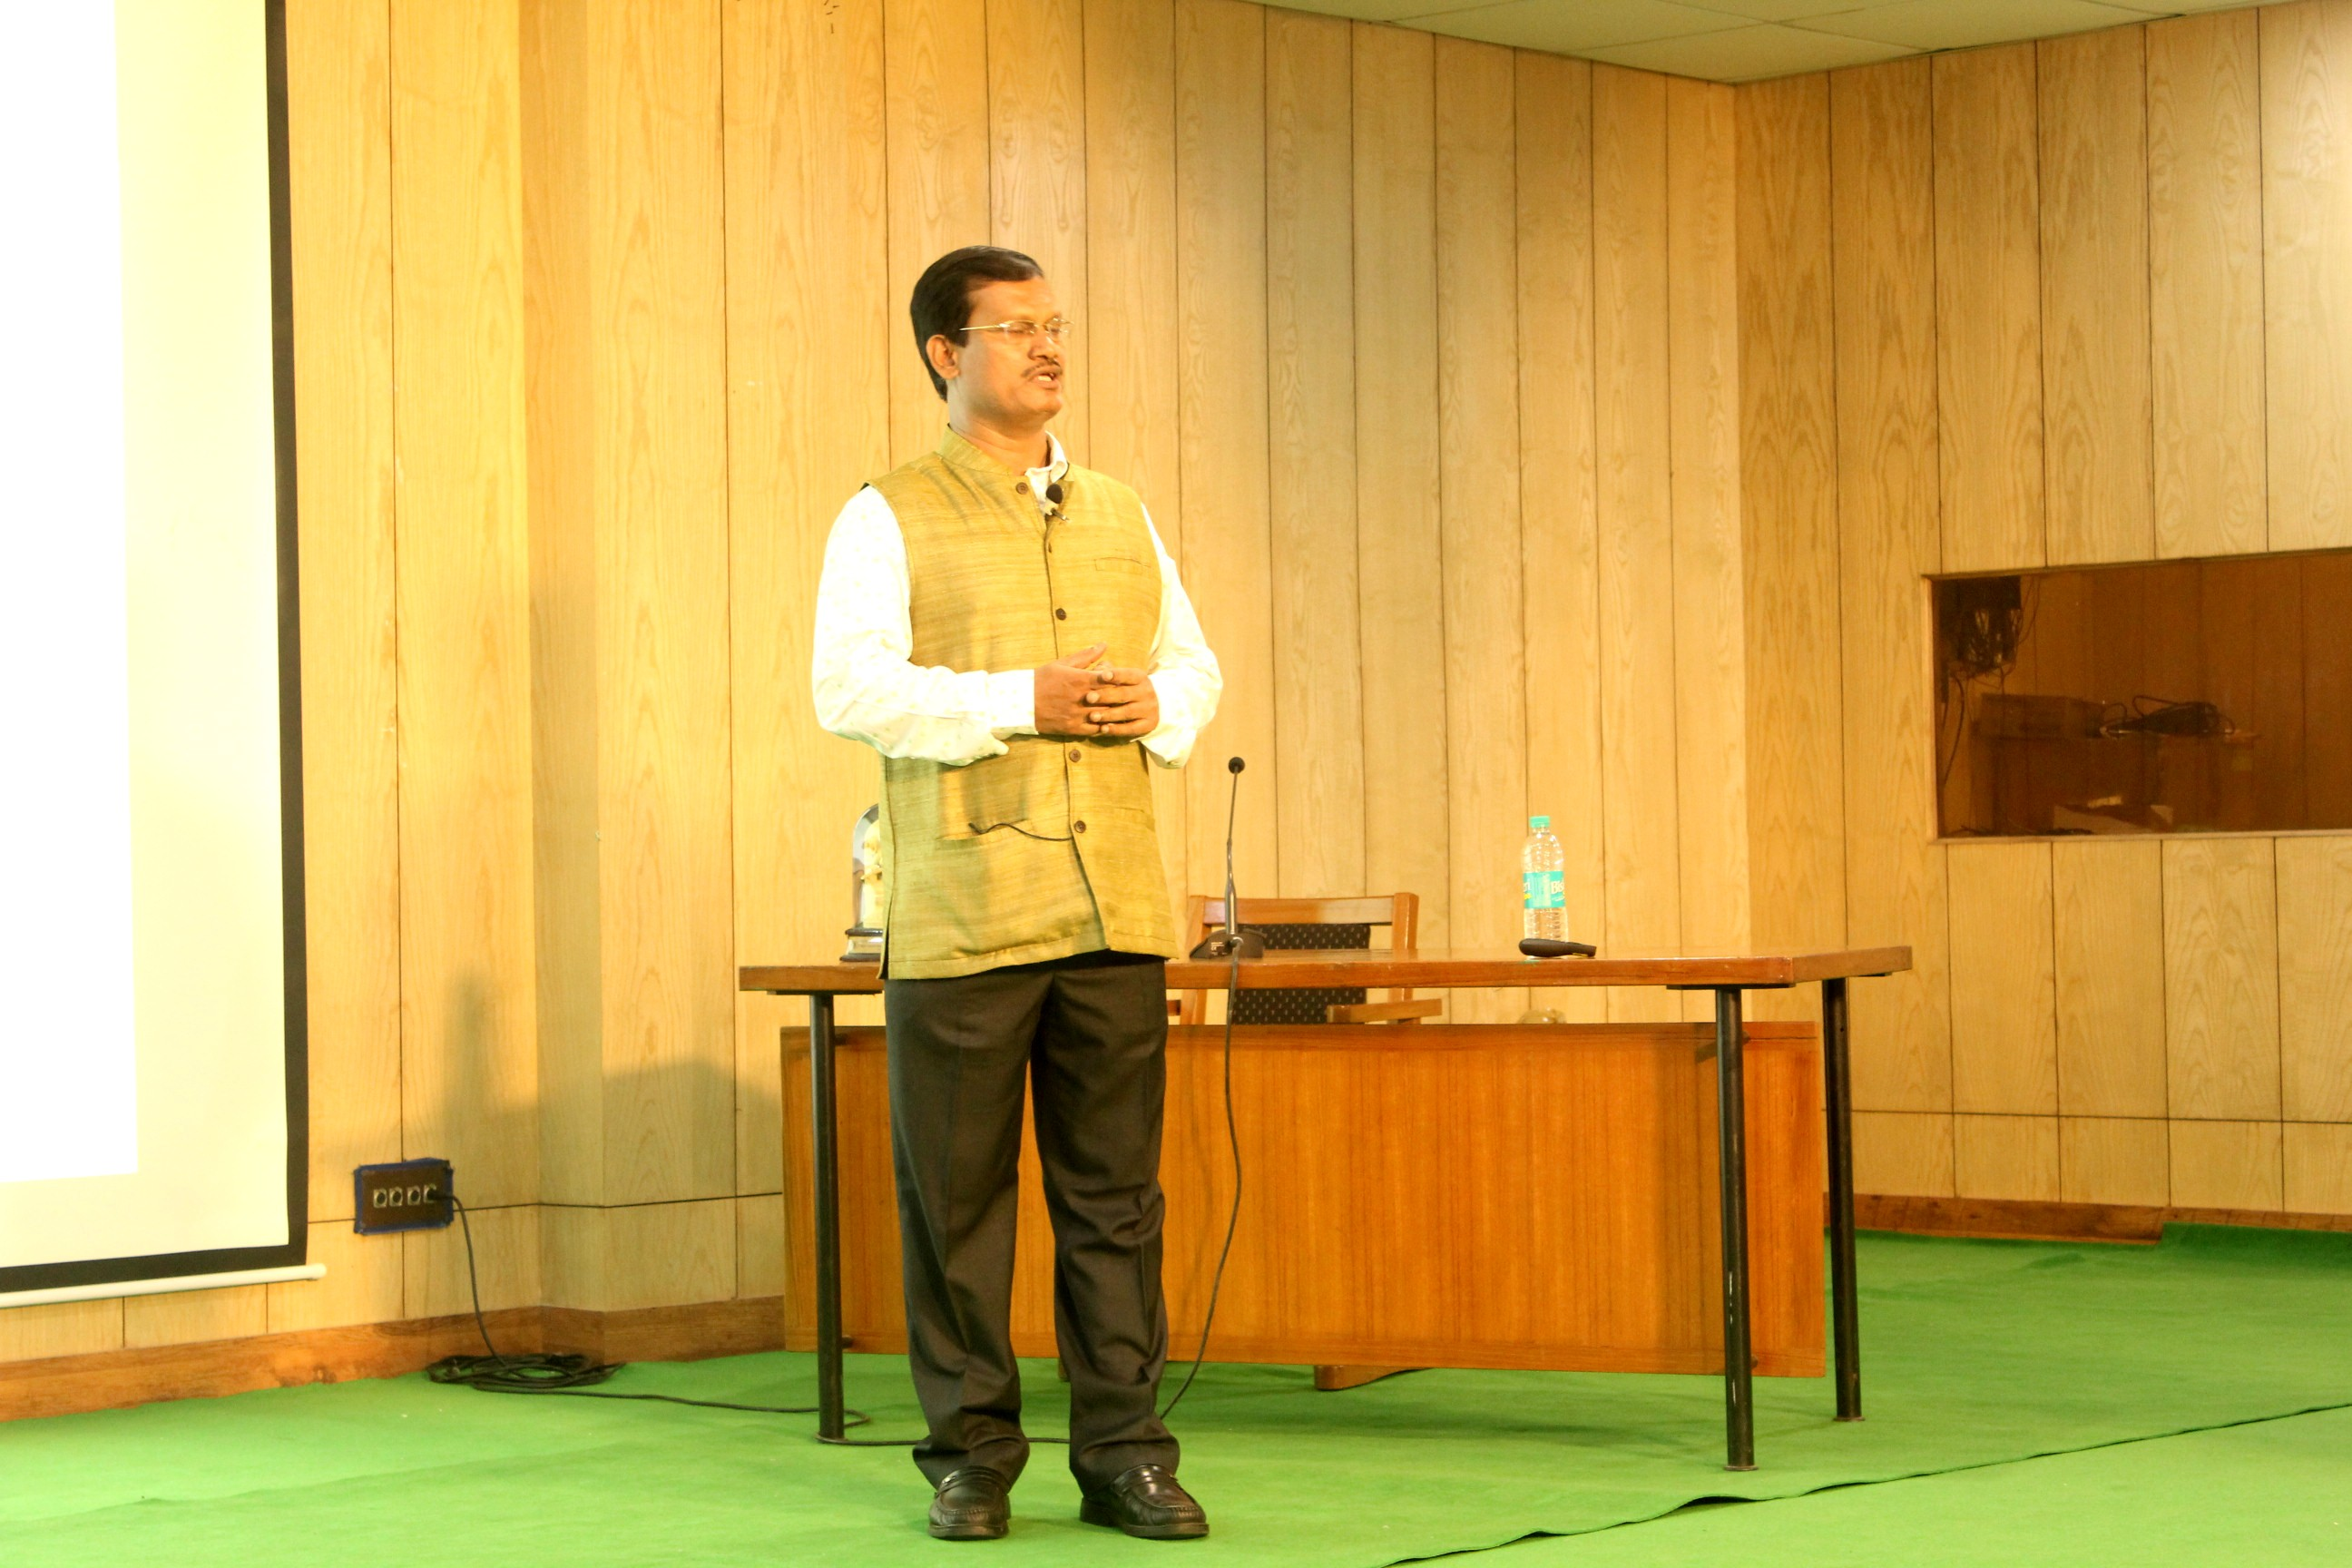 padma-shree-awardee-arunachalam-mruganantham-addressing-the-audience-during-a-a-talk-at-ignca